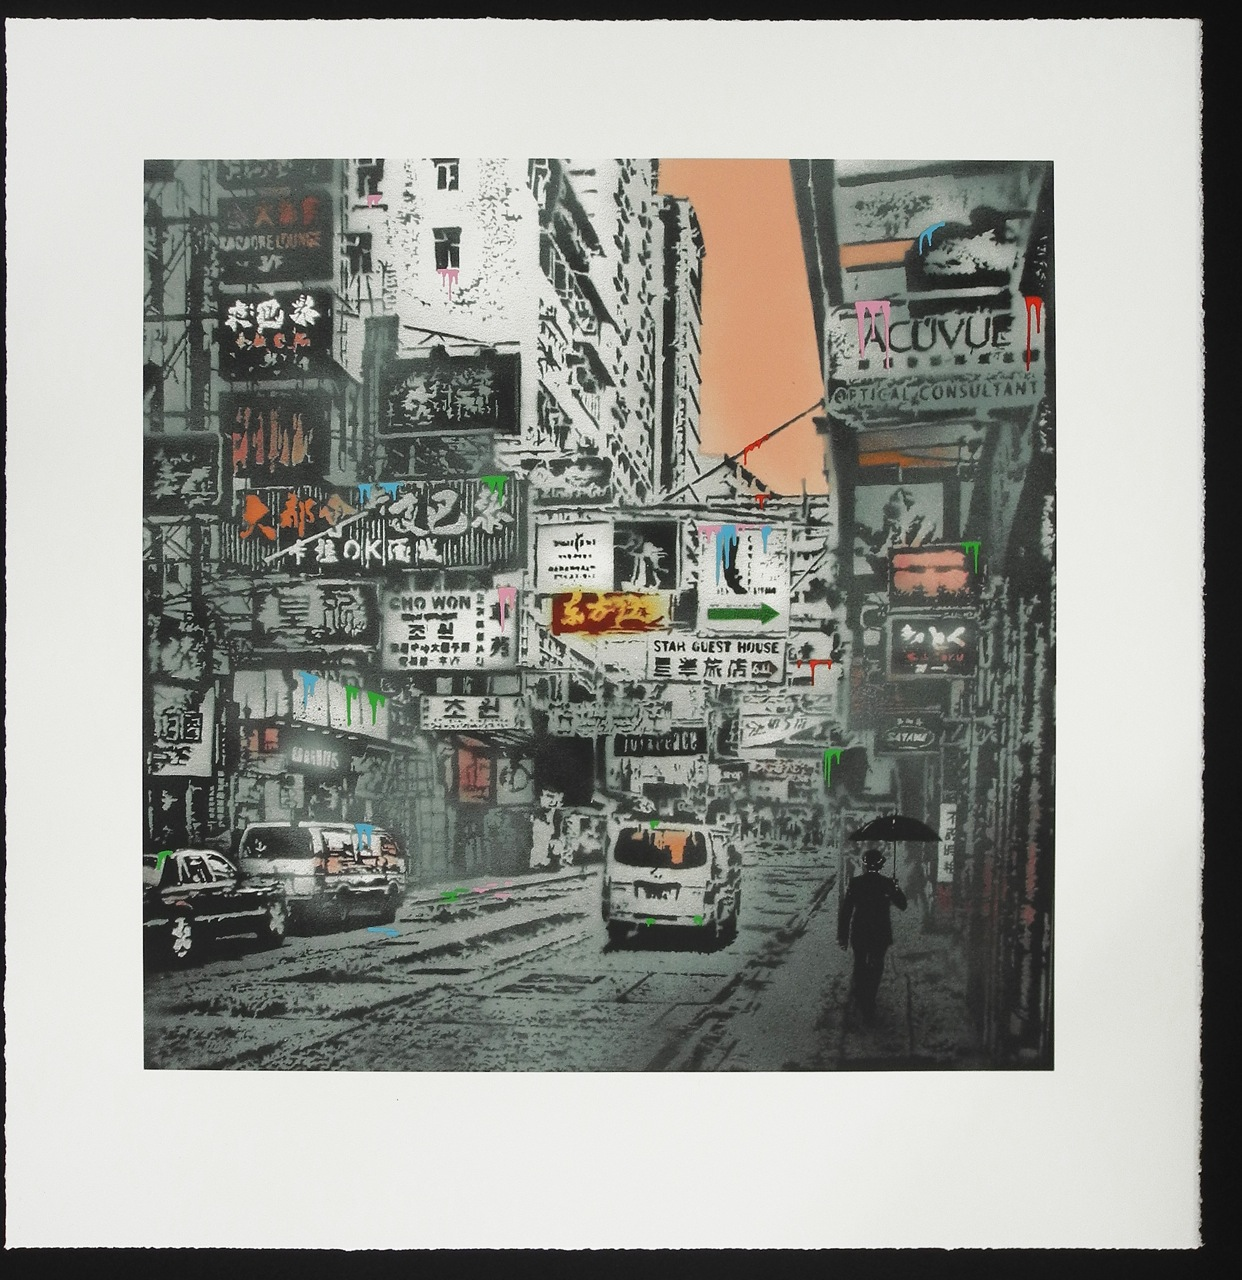 Nick Walker TMA Vandal Hong Kong AM 31